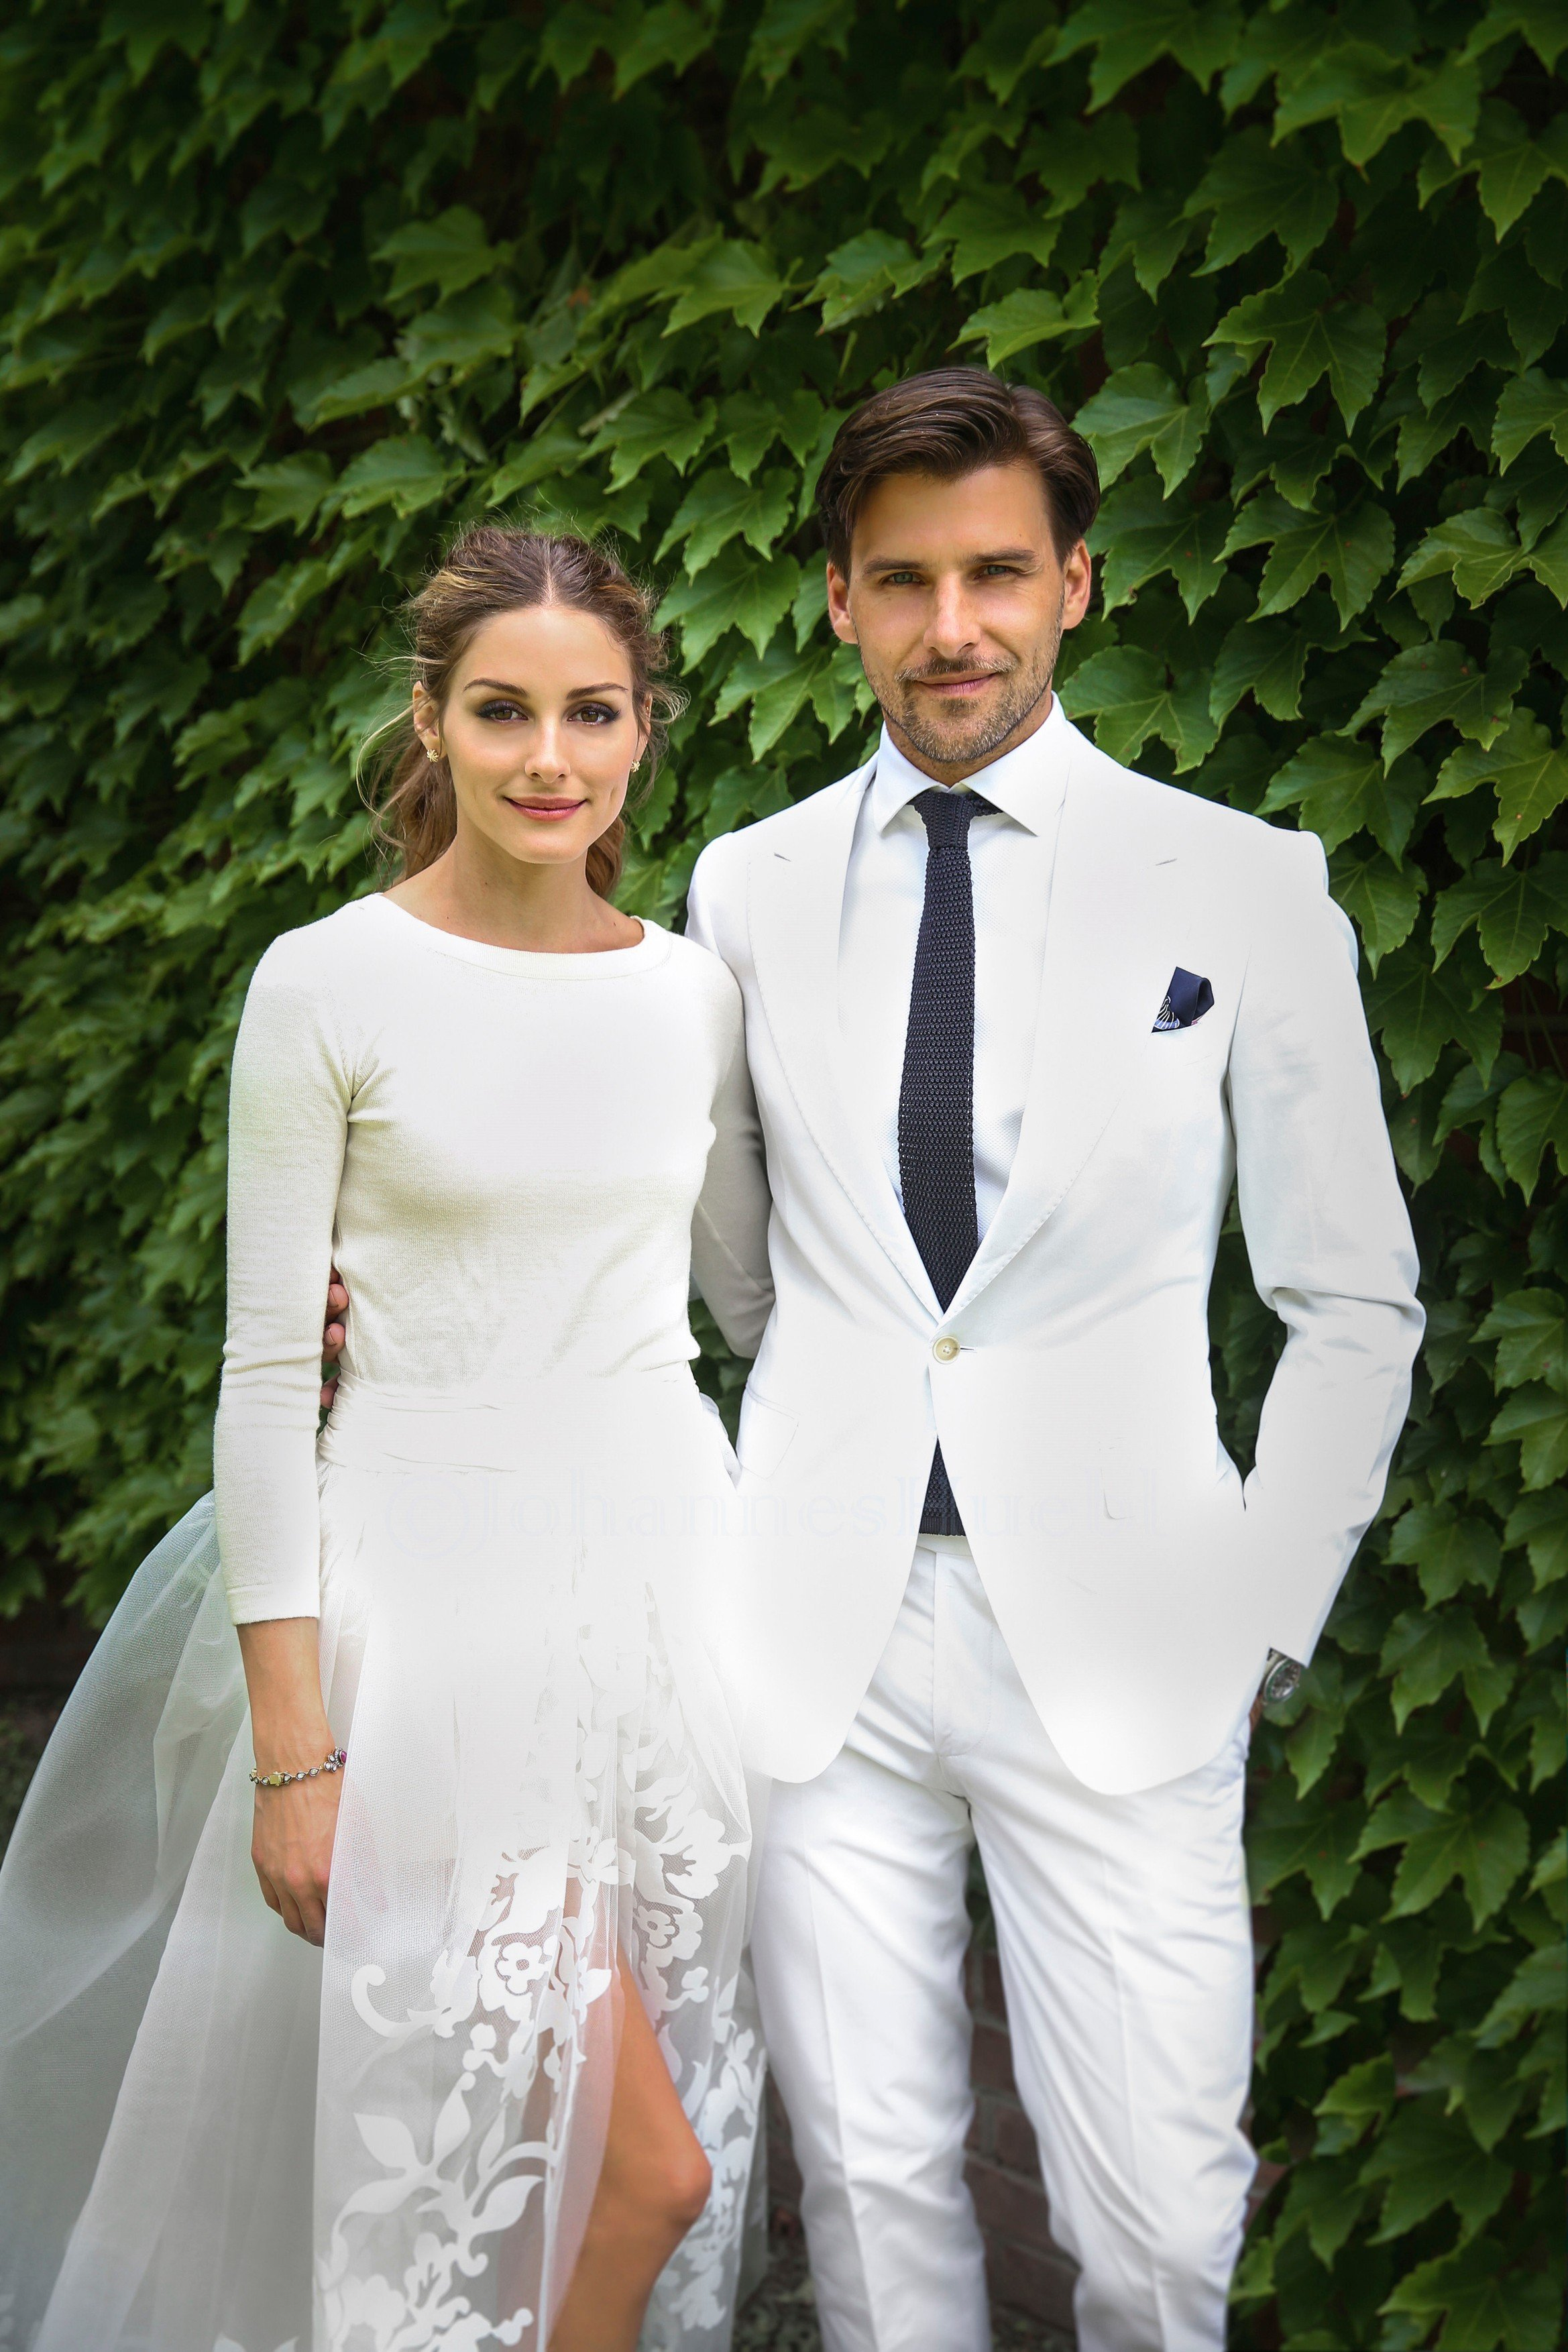 Just married! Olivia Palermo makes a beautiful bride as she weds Johannes Huebl in intimate civil ceremony. Olivia Palermo has married Johannes Huebl after six and a half years of dating. A week after it was alleged they'd had a secret wedding, the happy couple saidI doin an intimate civil ceremony with just a few guests. The wedding took place on Saturday in Bedford, New York and Olivia could not have made a more beautiful bride. Olivia poste these 2 pictures, Image: 197729906, License: Rights-managed, Restrictions: Photo supplied by insight media. For editorial use only. Single rate handling fee applies., Model Release: no, Credit line: Profimedia, Insight Media